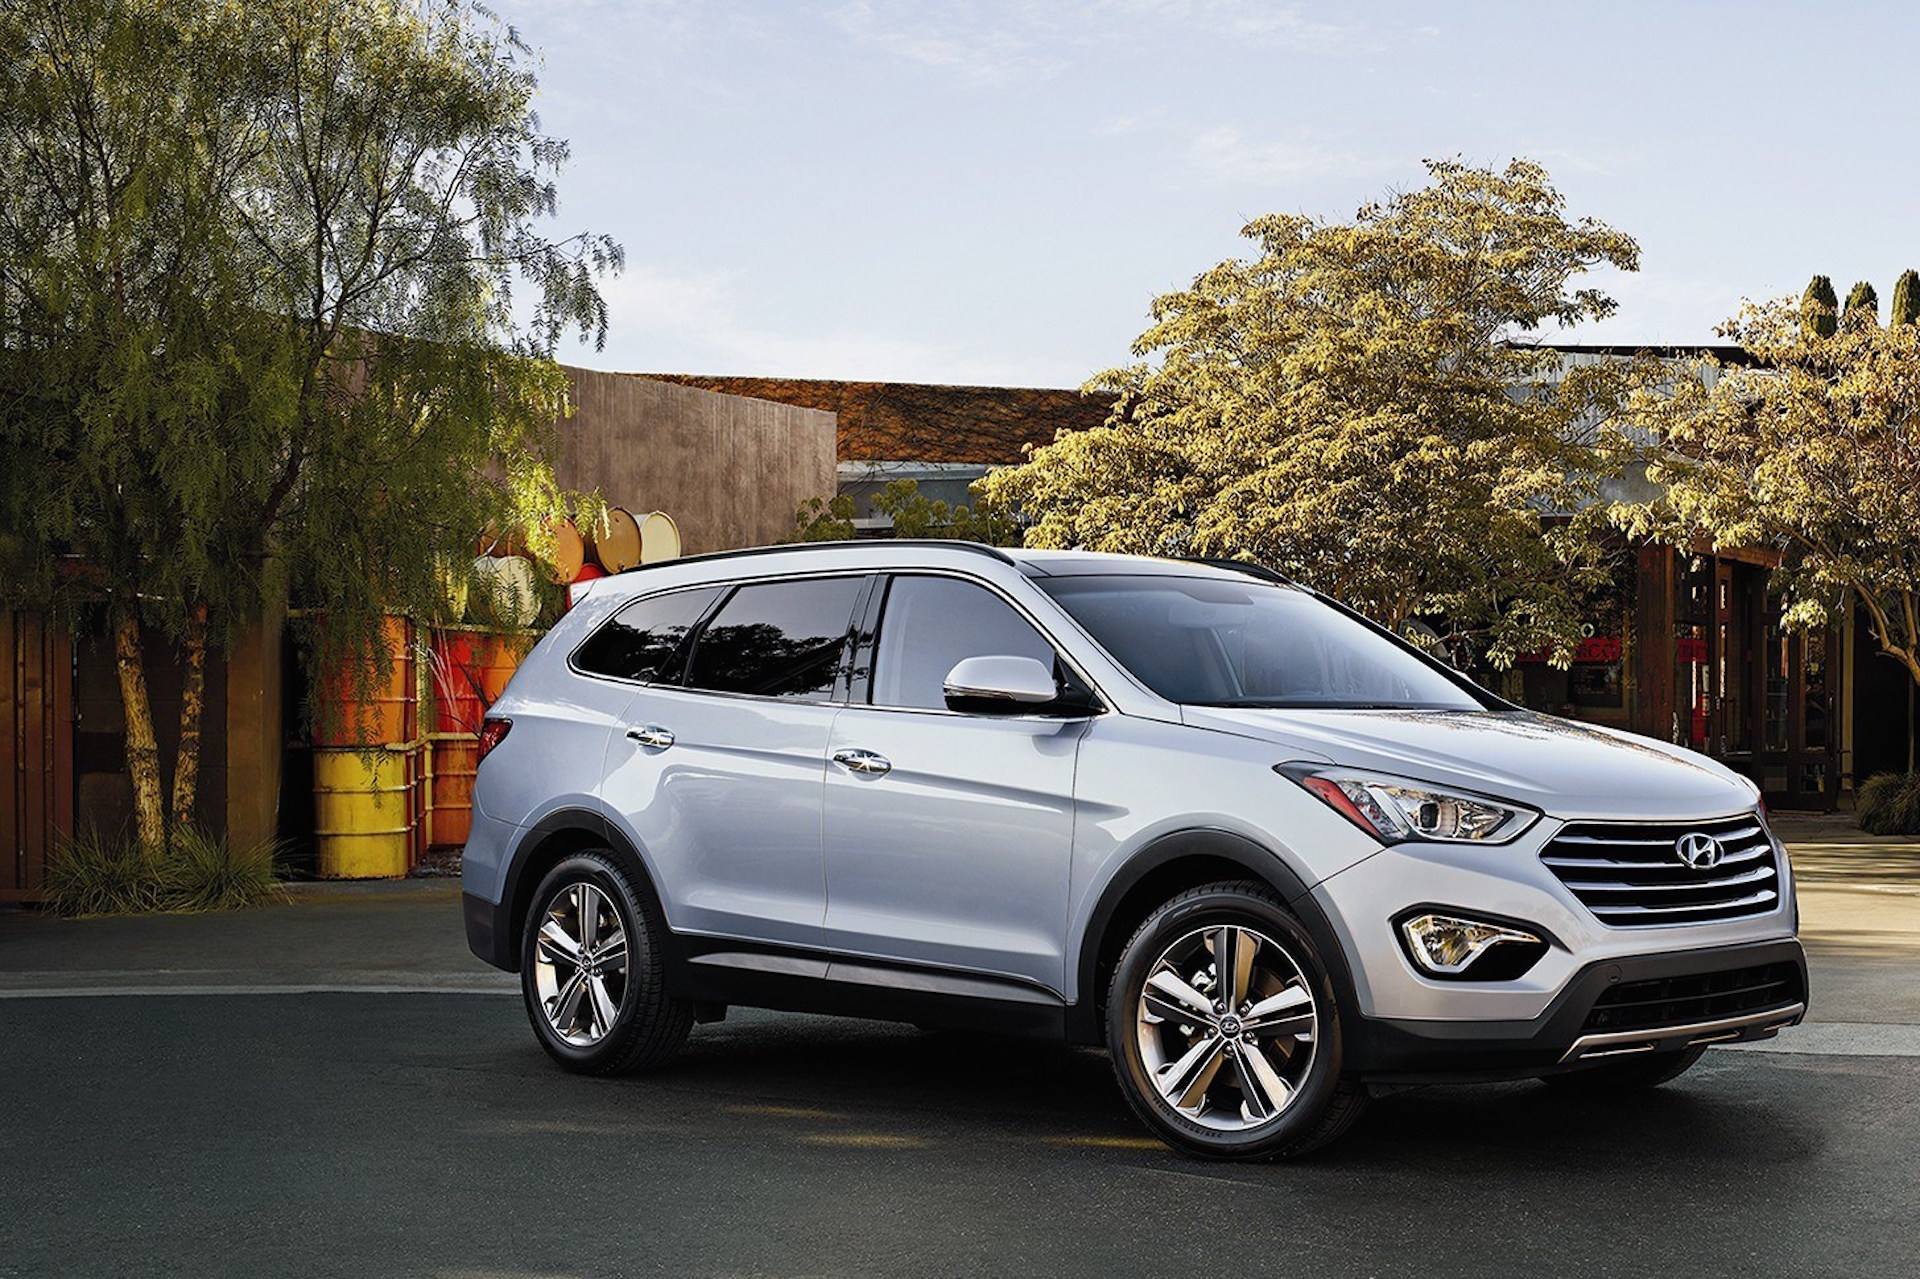 Highlander For Sale >> 2016 Hyundai Santa Fe Review, Ratings, Specs, Prices, and Photos - The Car Connection